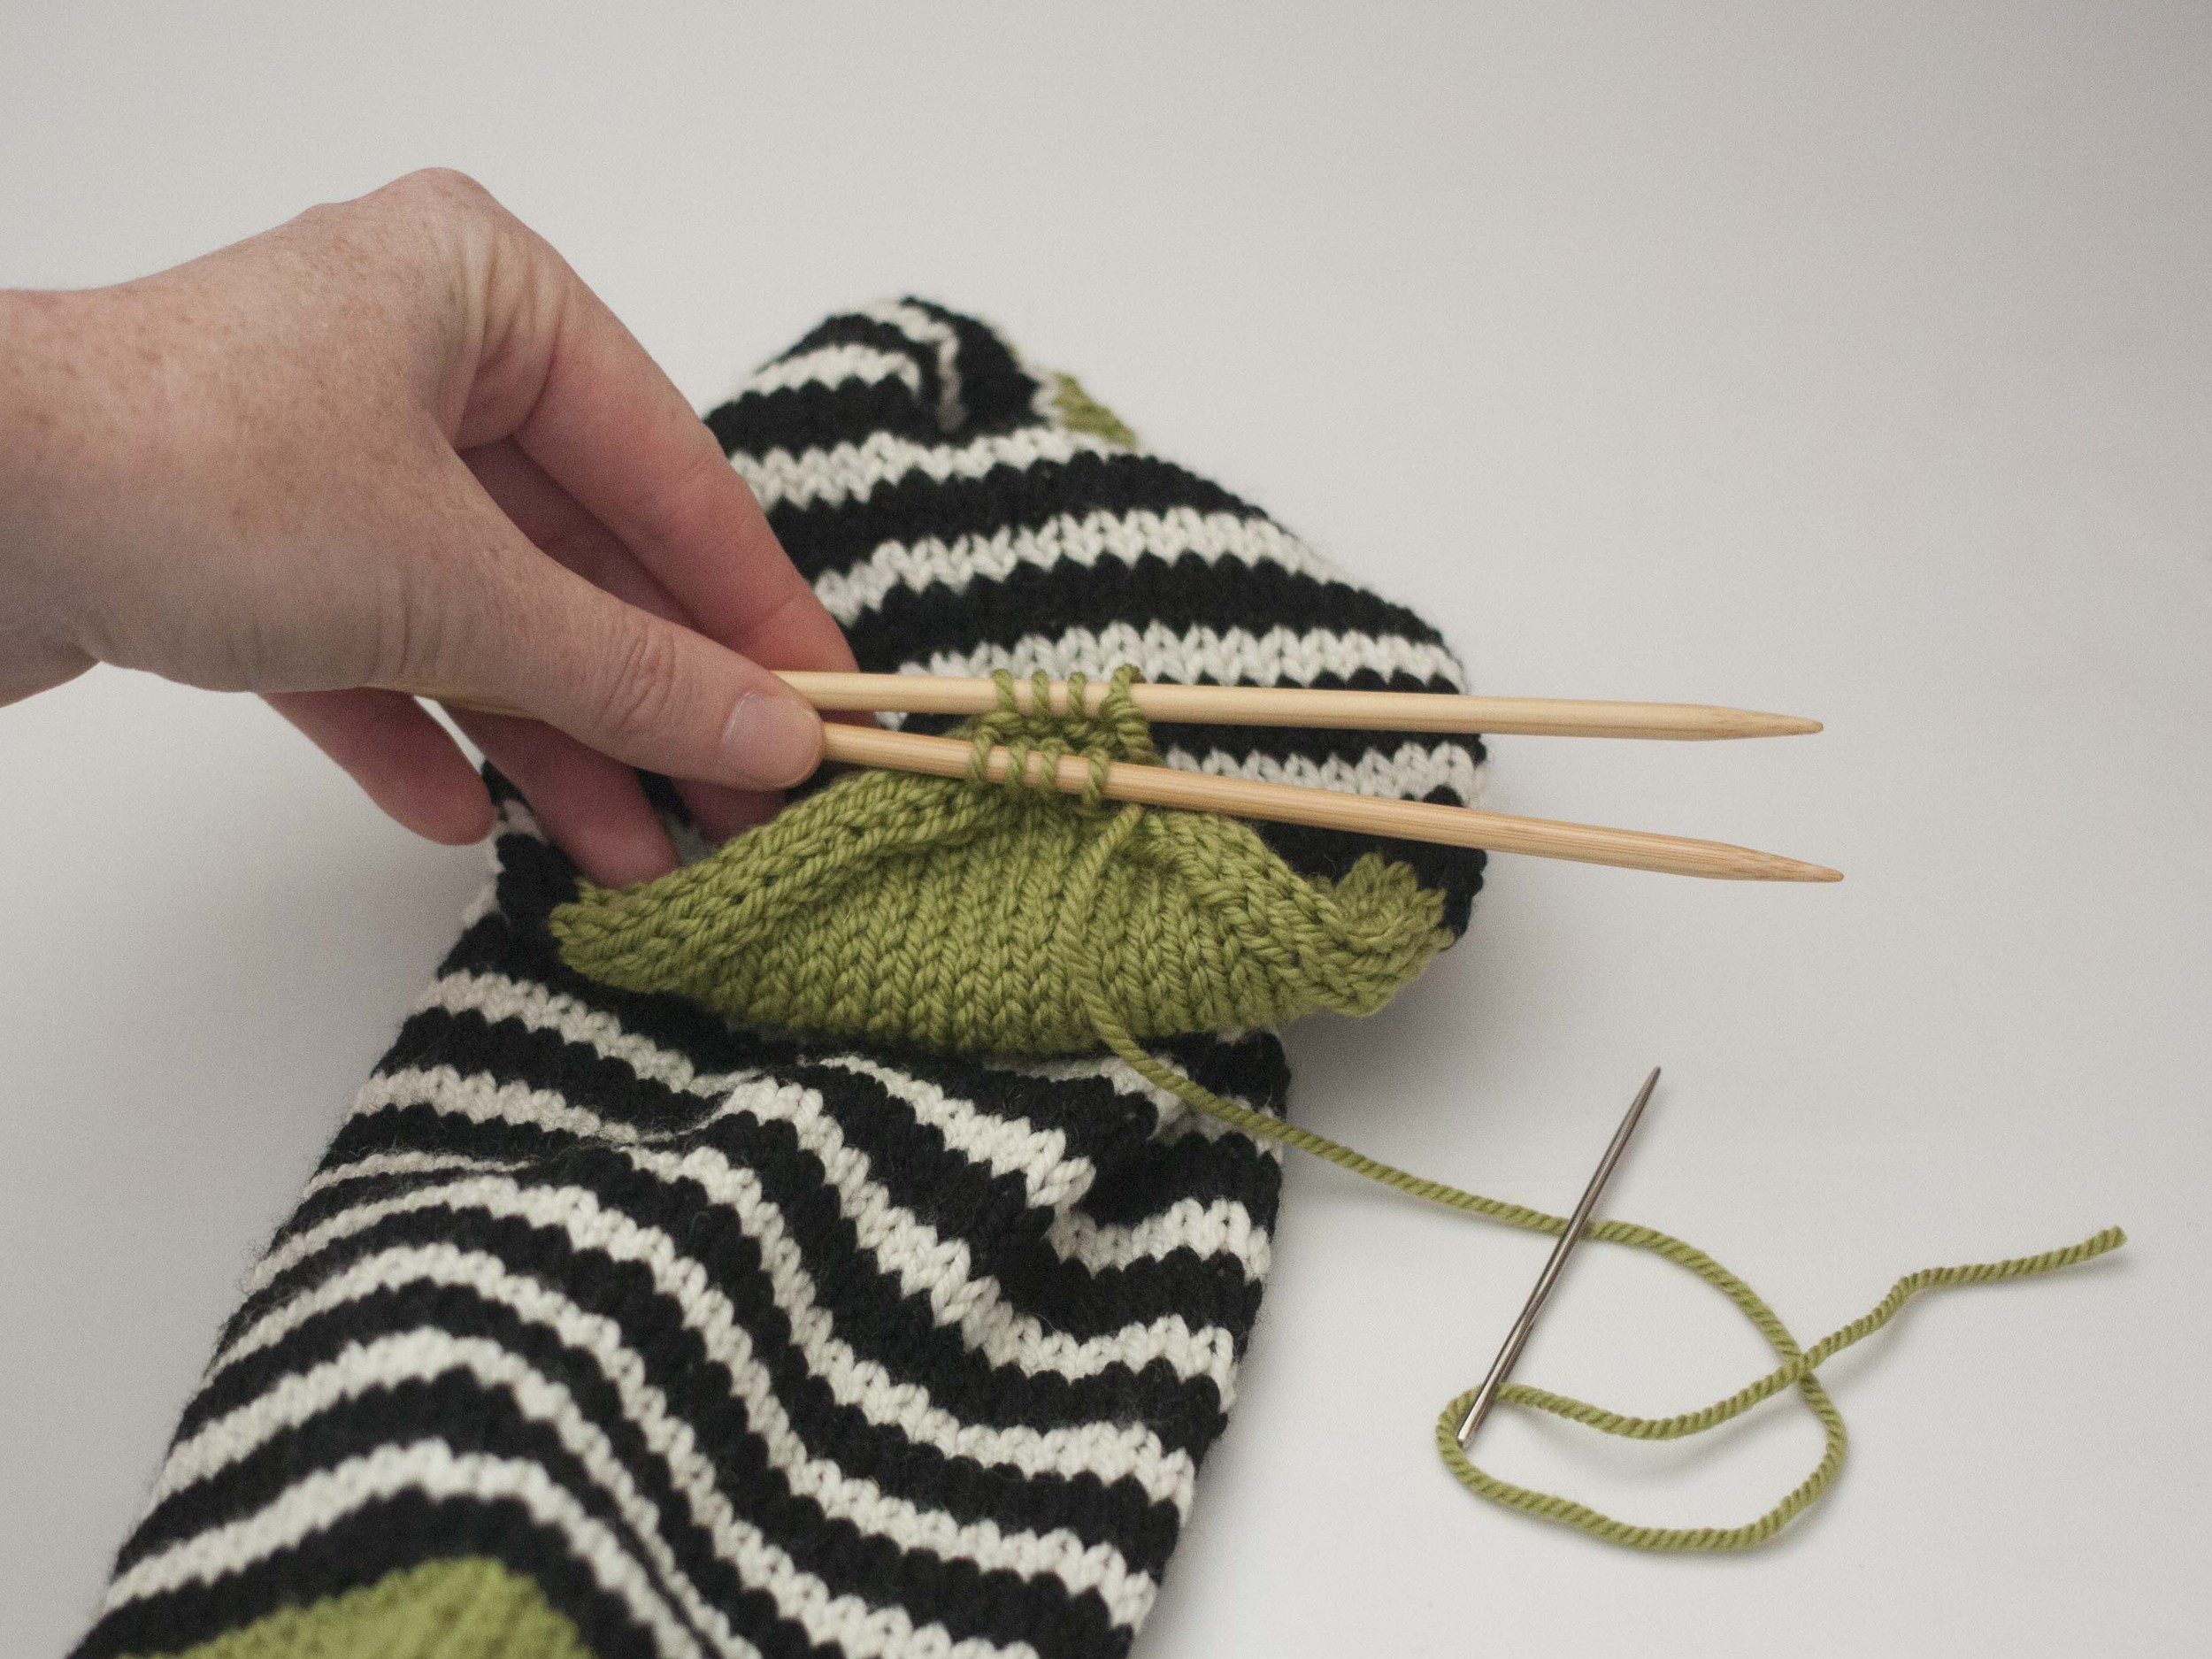 How to knit Kitchener Stitch